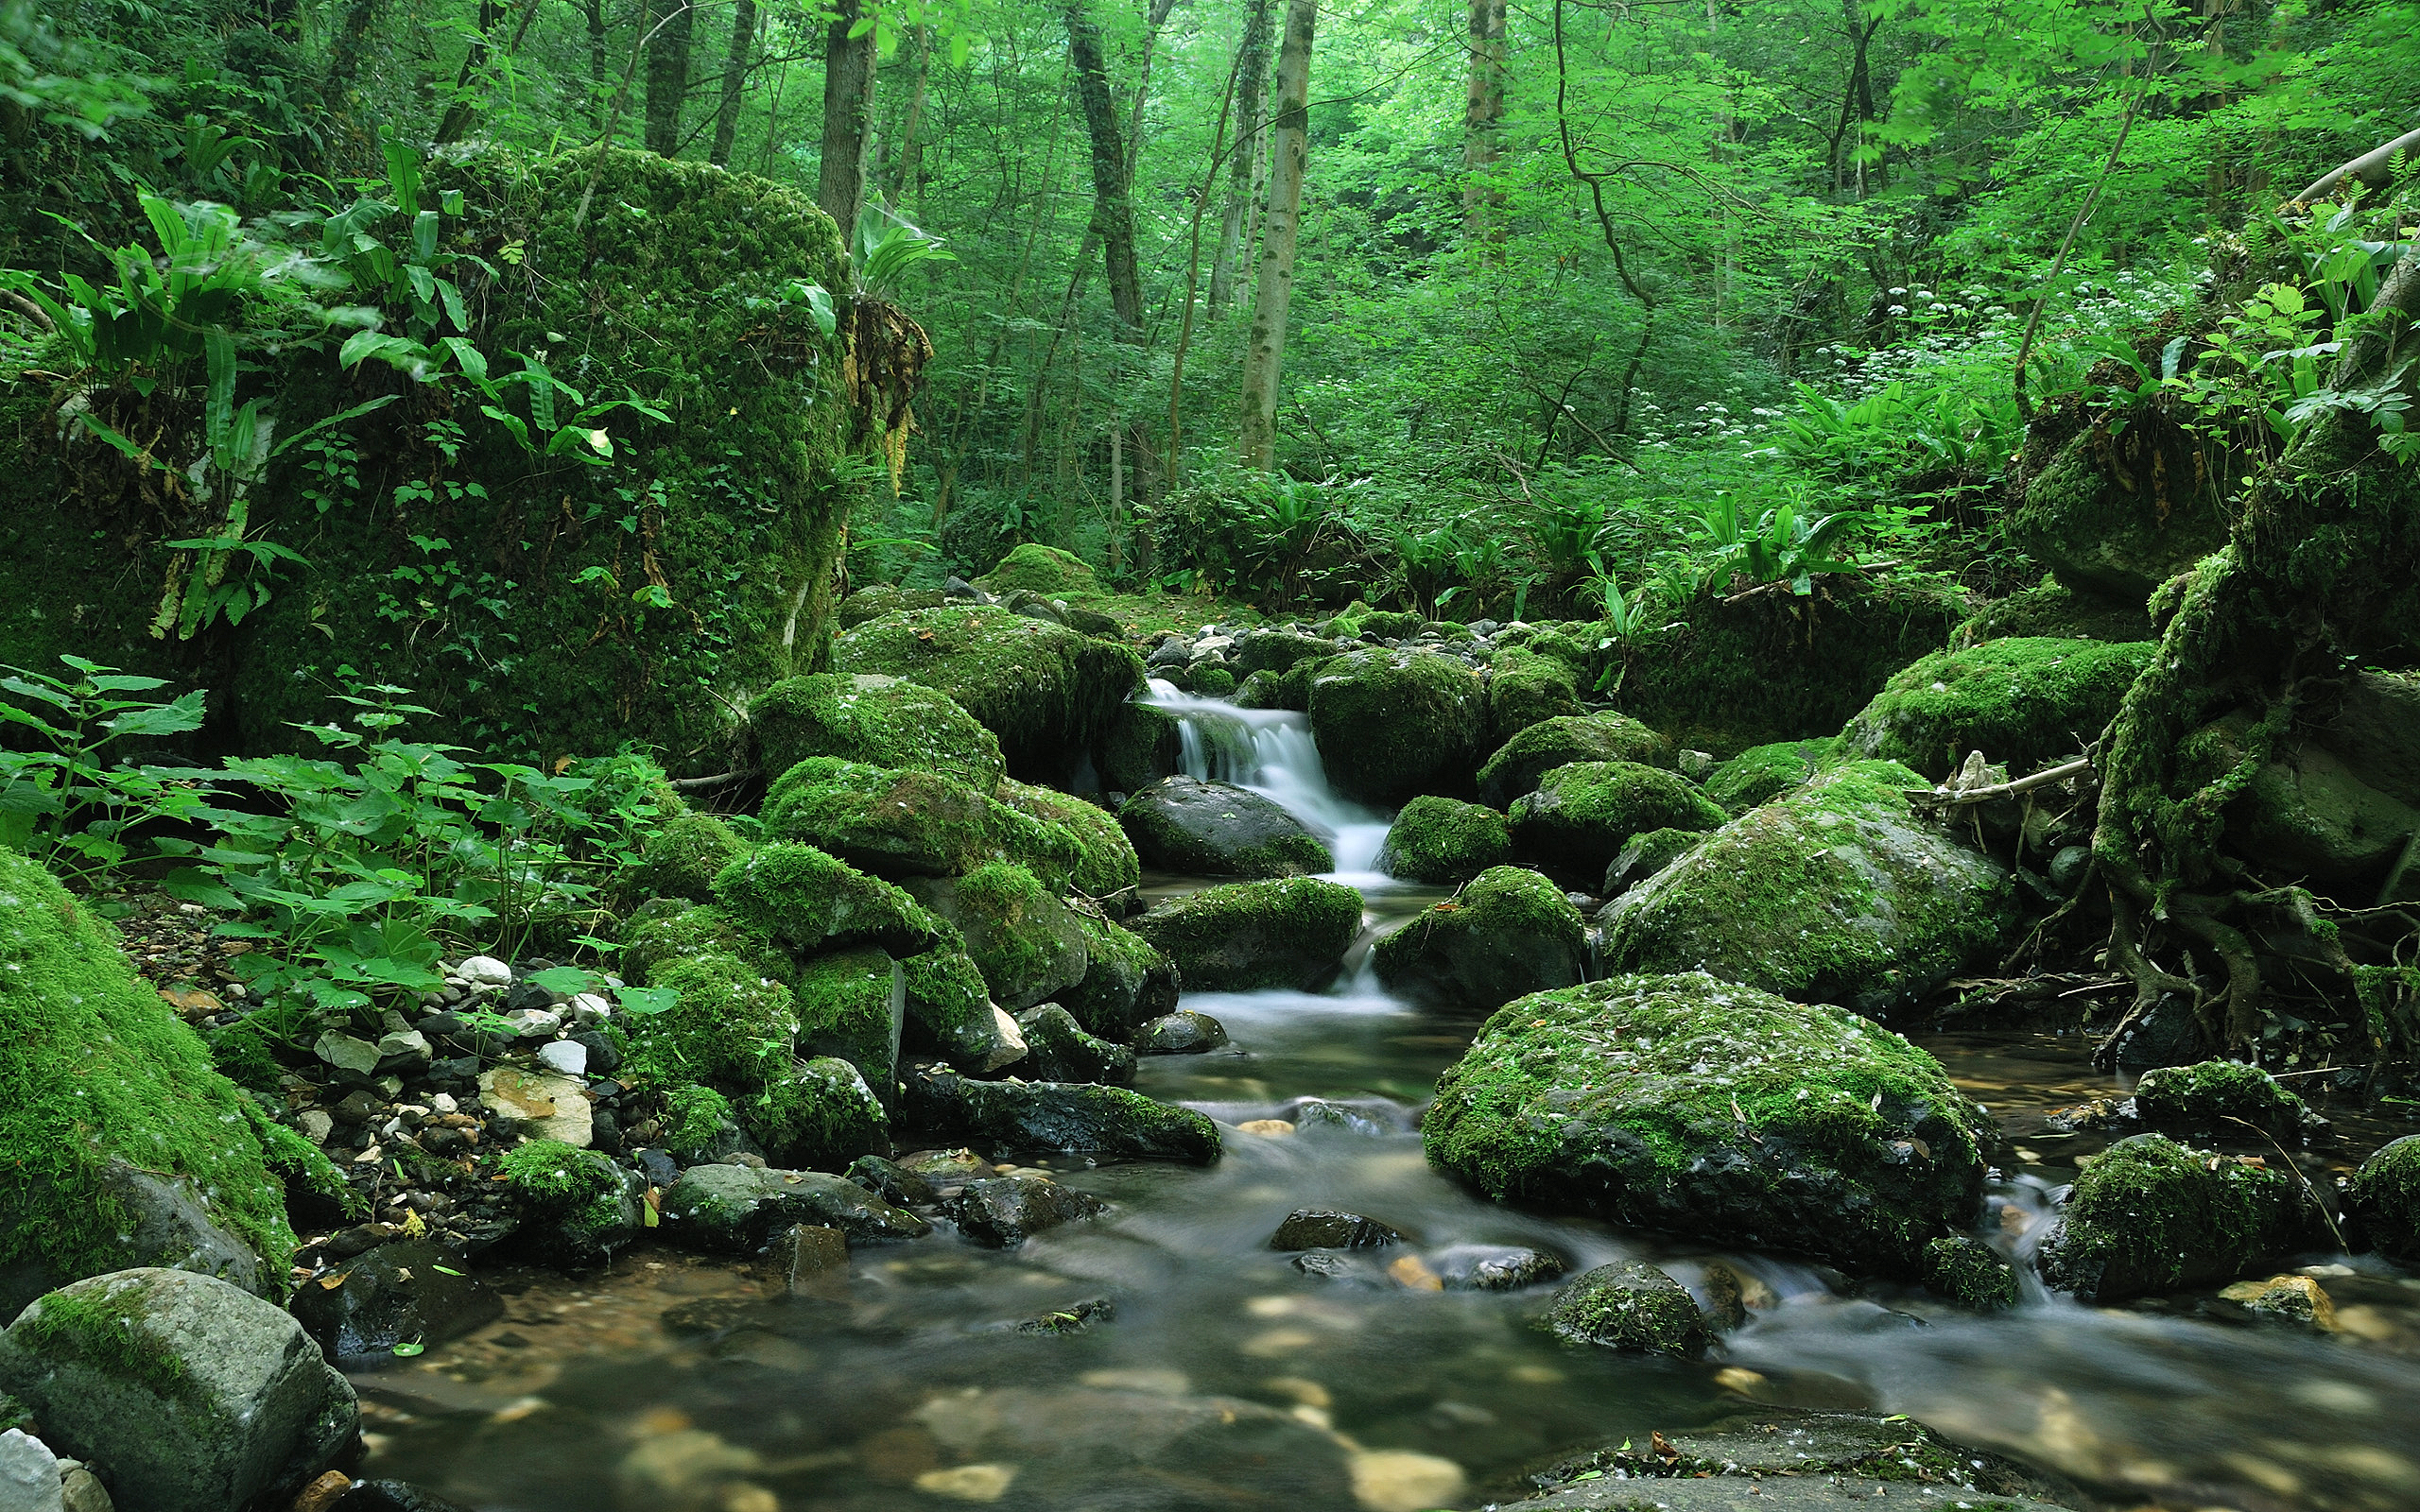 Wallpapers Grass Waterfalls In Wallpapers Grass Waterfalls In The Forest Million Com 2560x1600